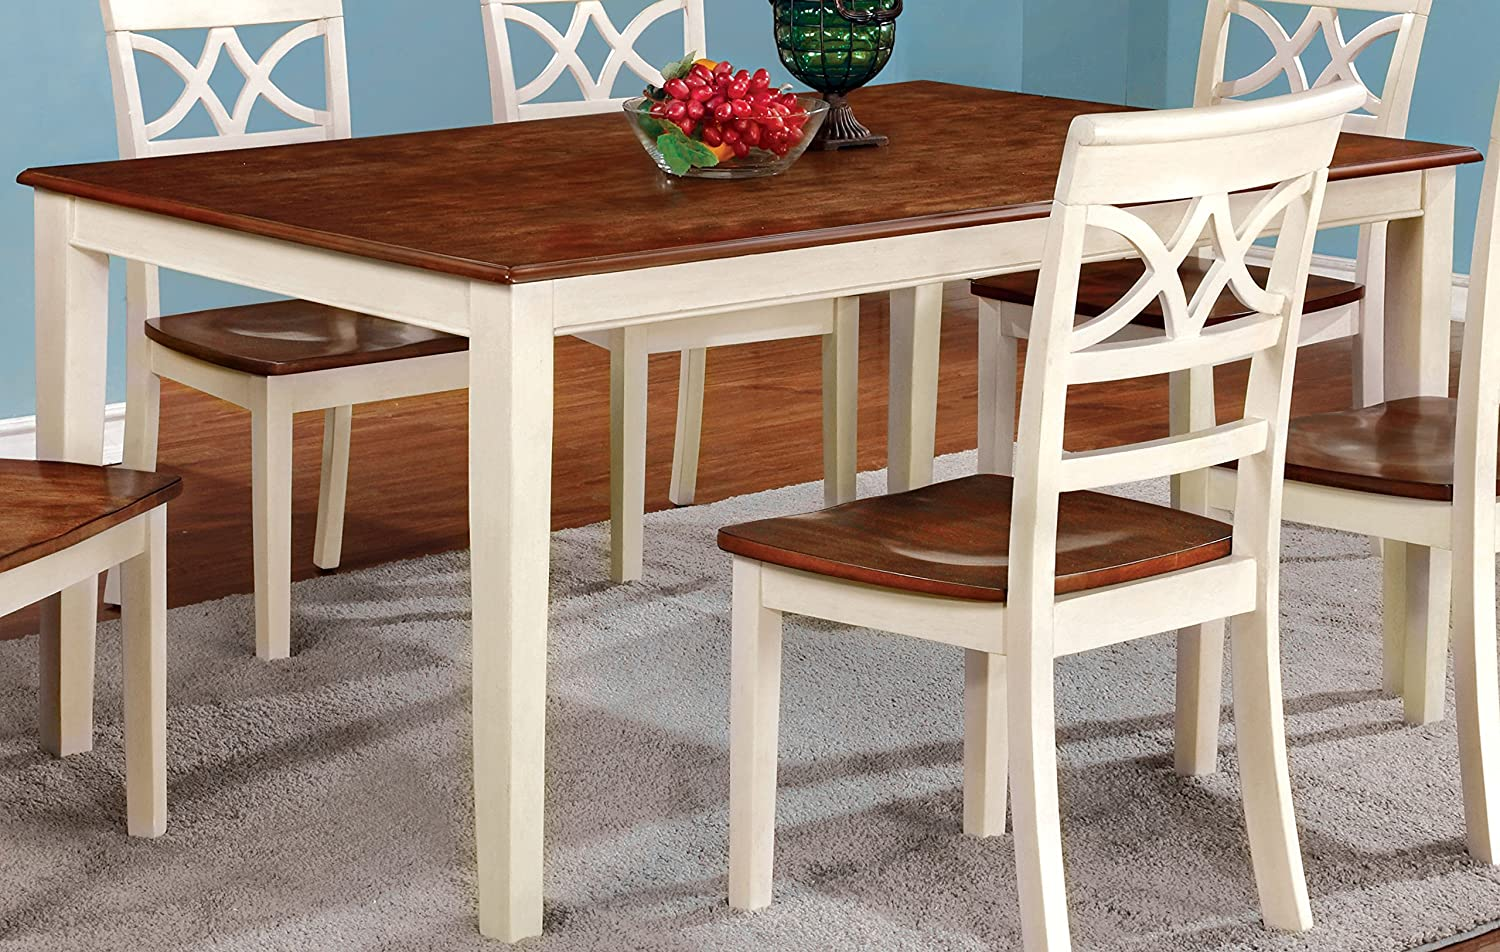 Furniture of America Cherrine Country Style Dining Table, Oak/Vintage White